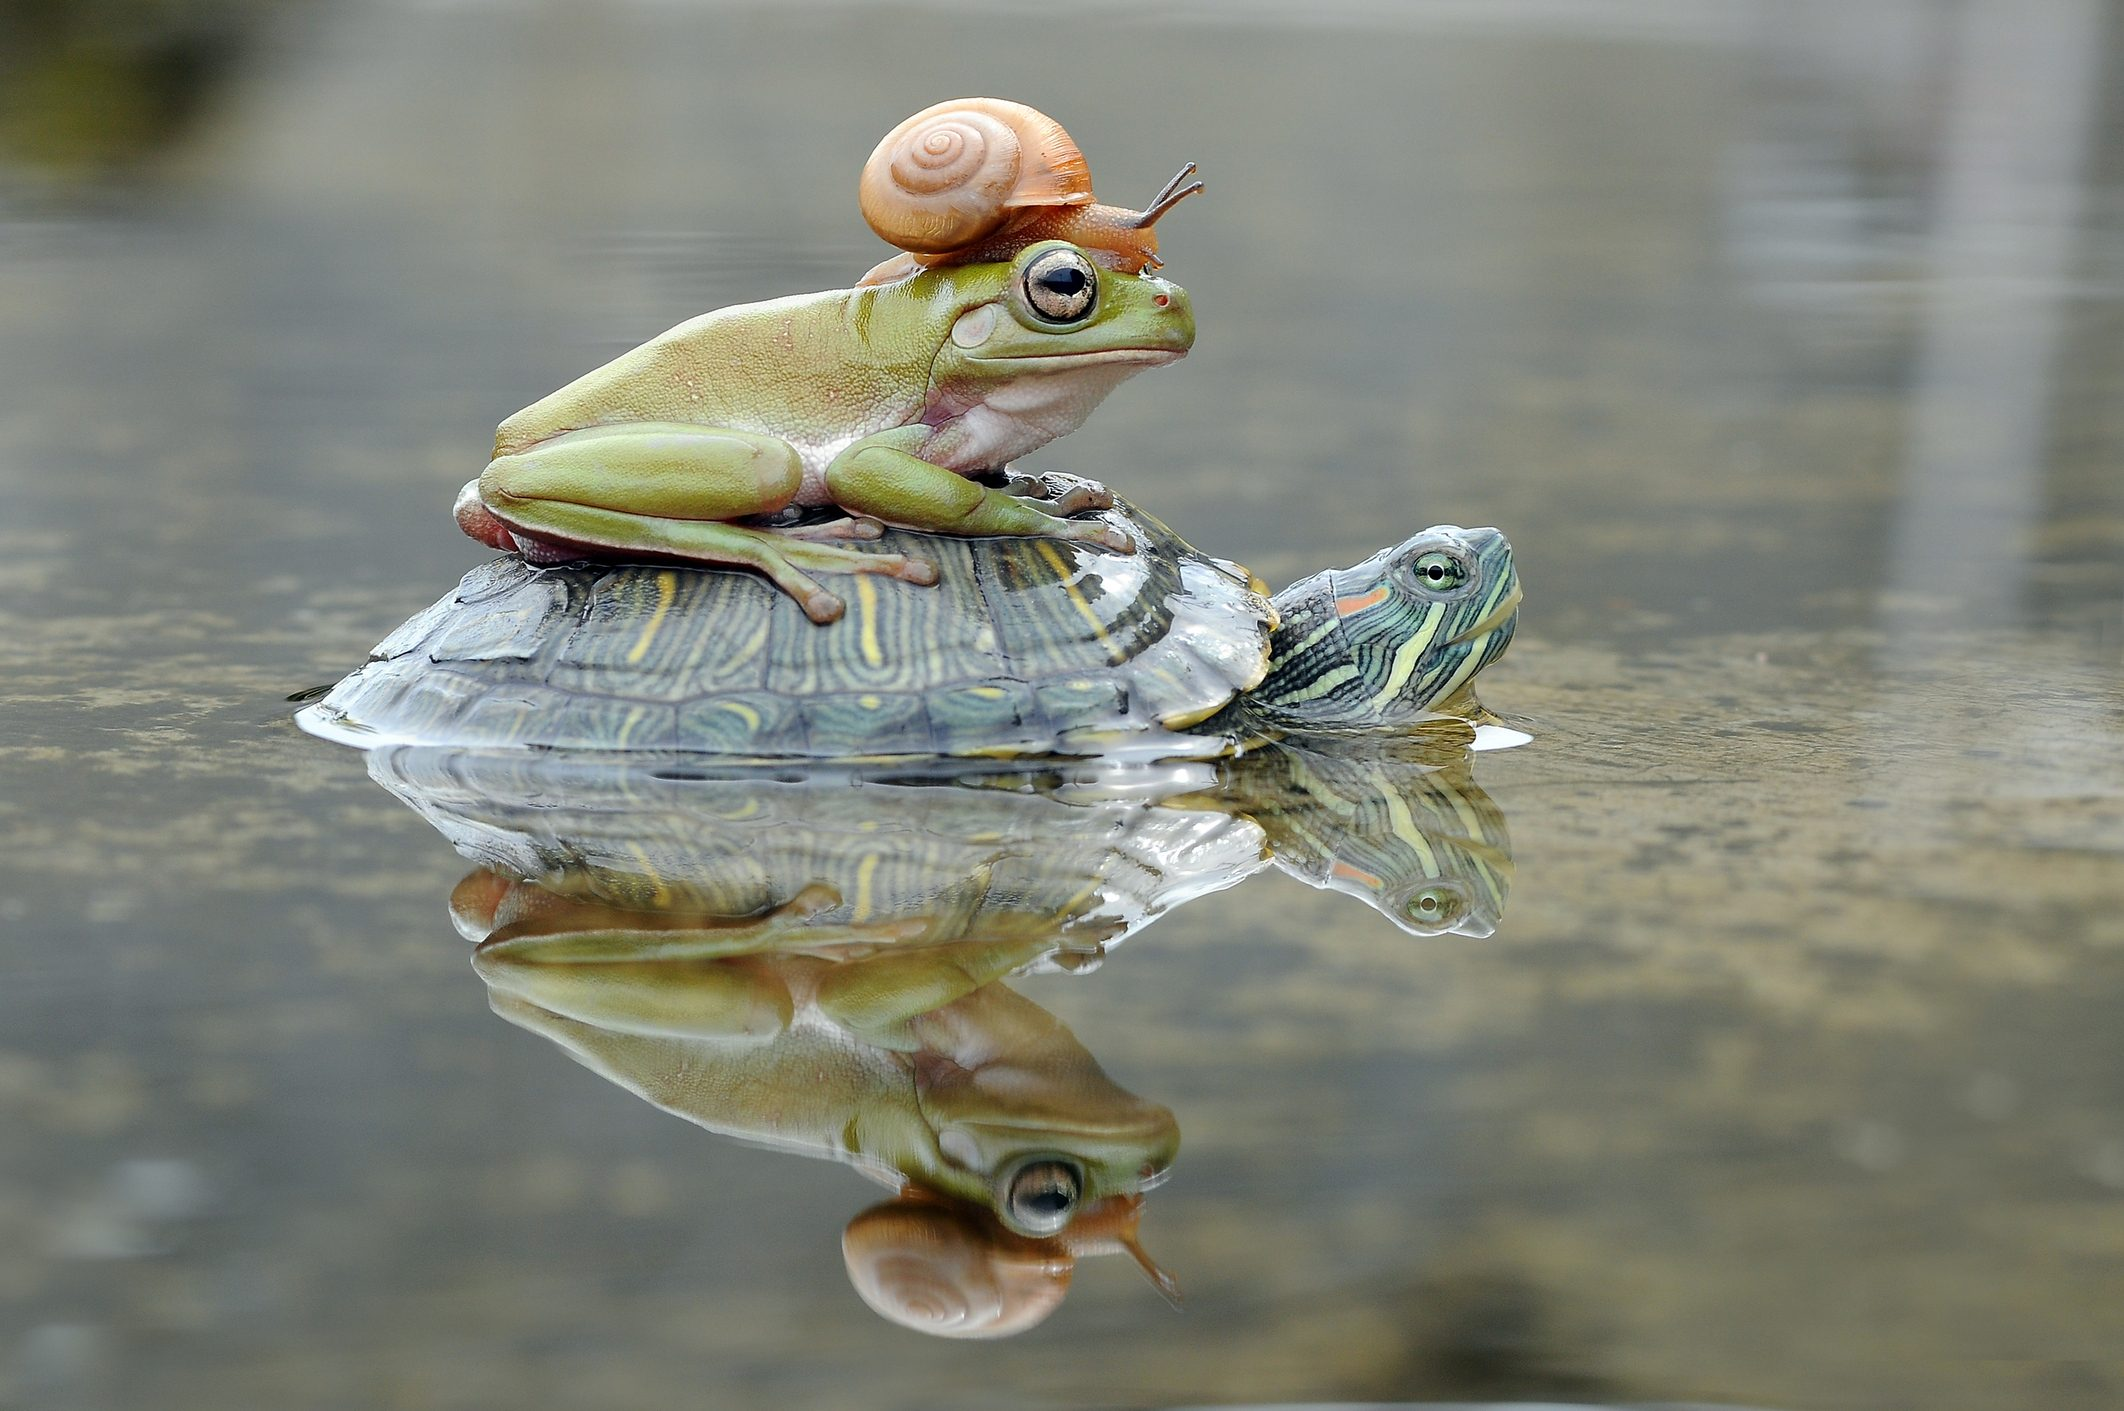 Frog and a snail on a turtle, Indonesia